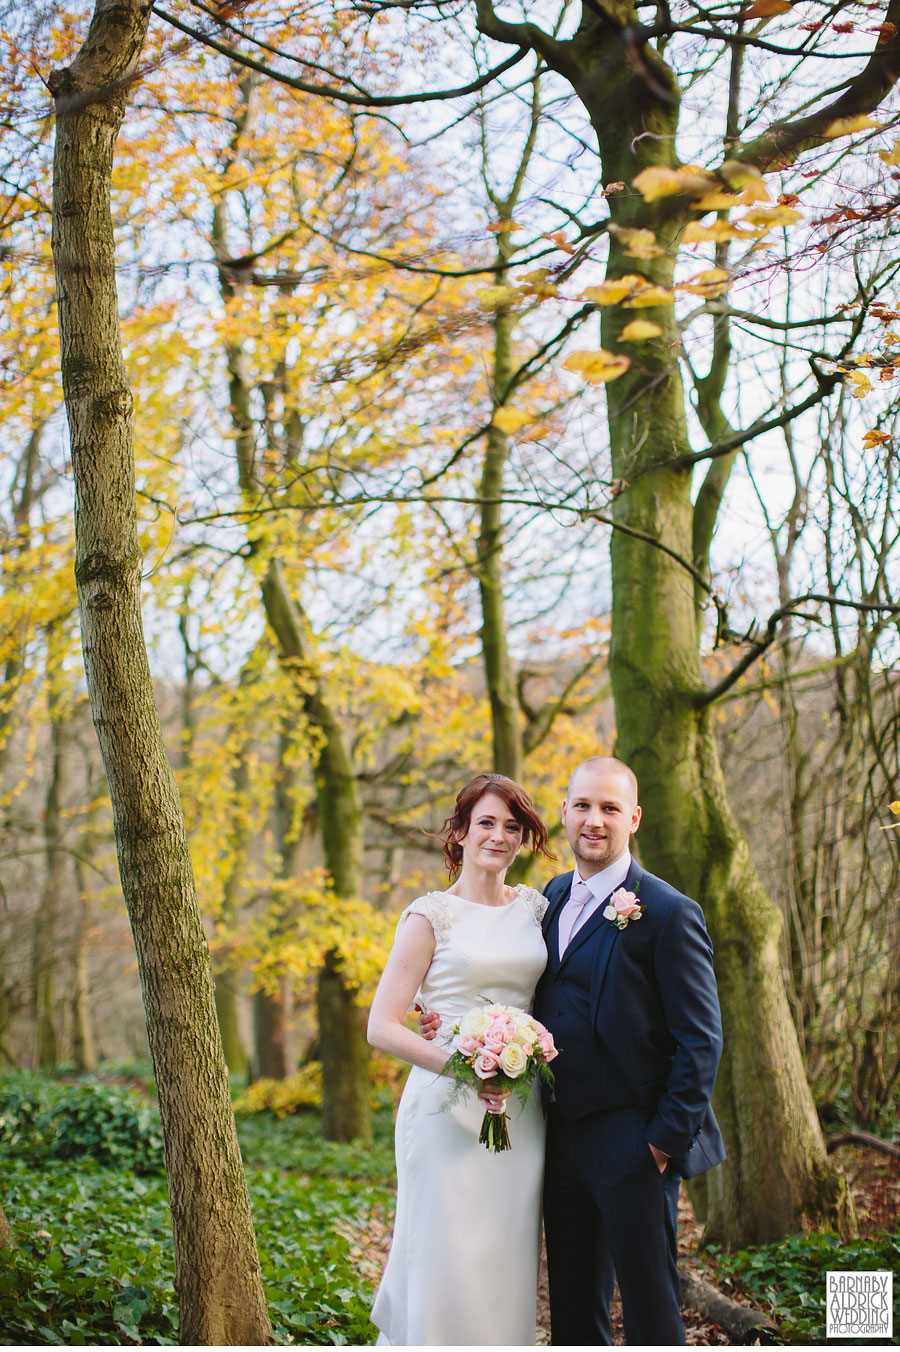 Woodlands Hotel Leeds Wedding Photography 038